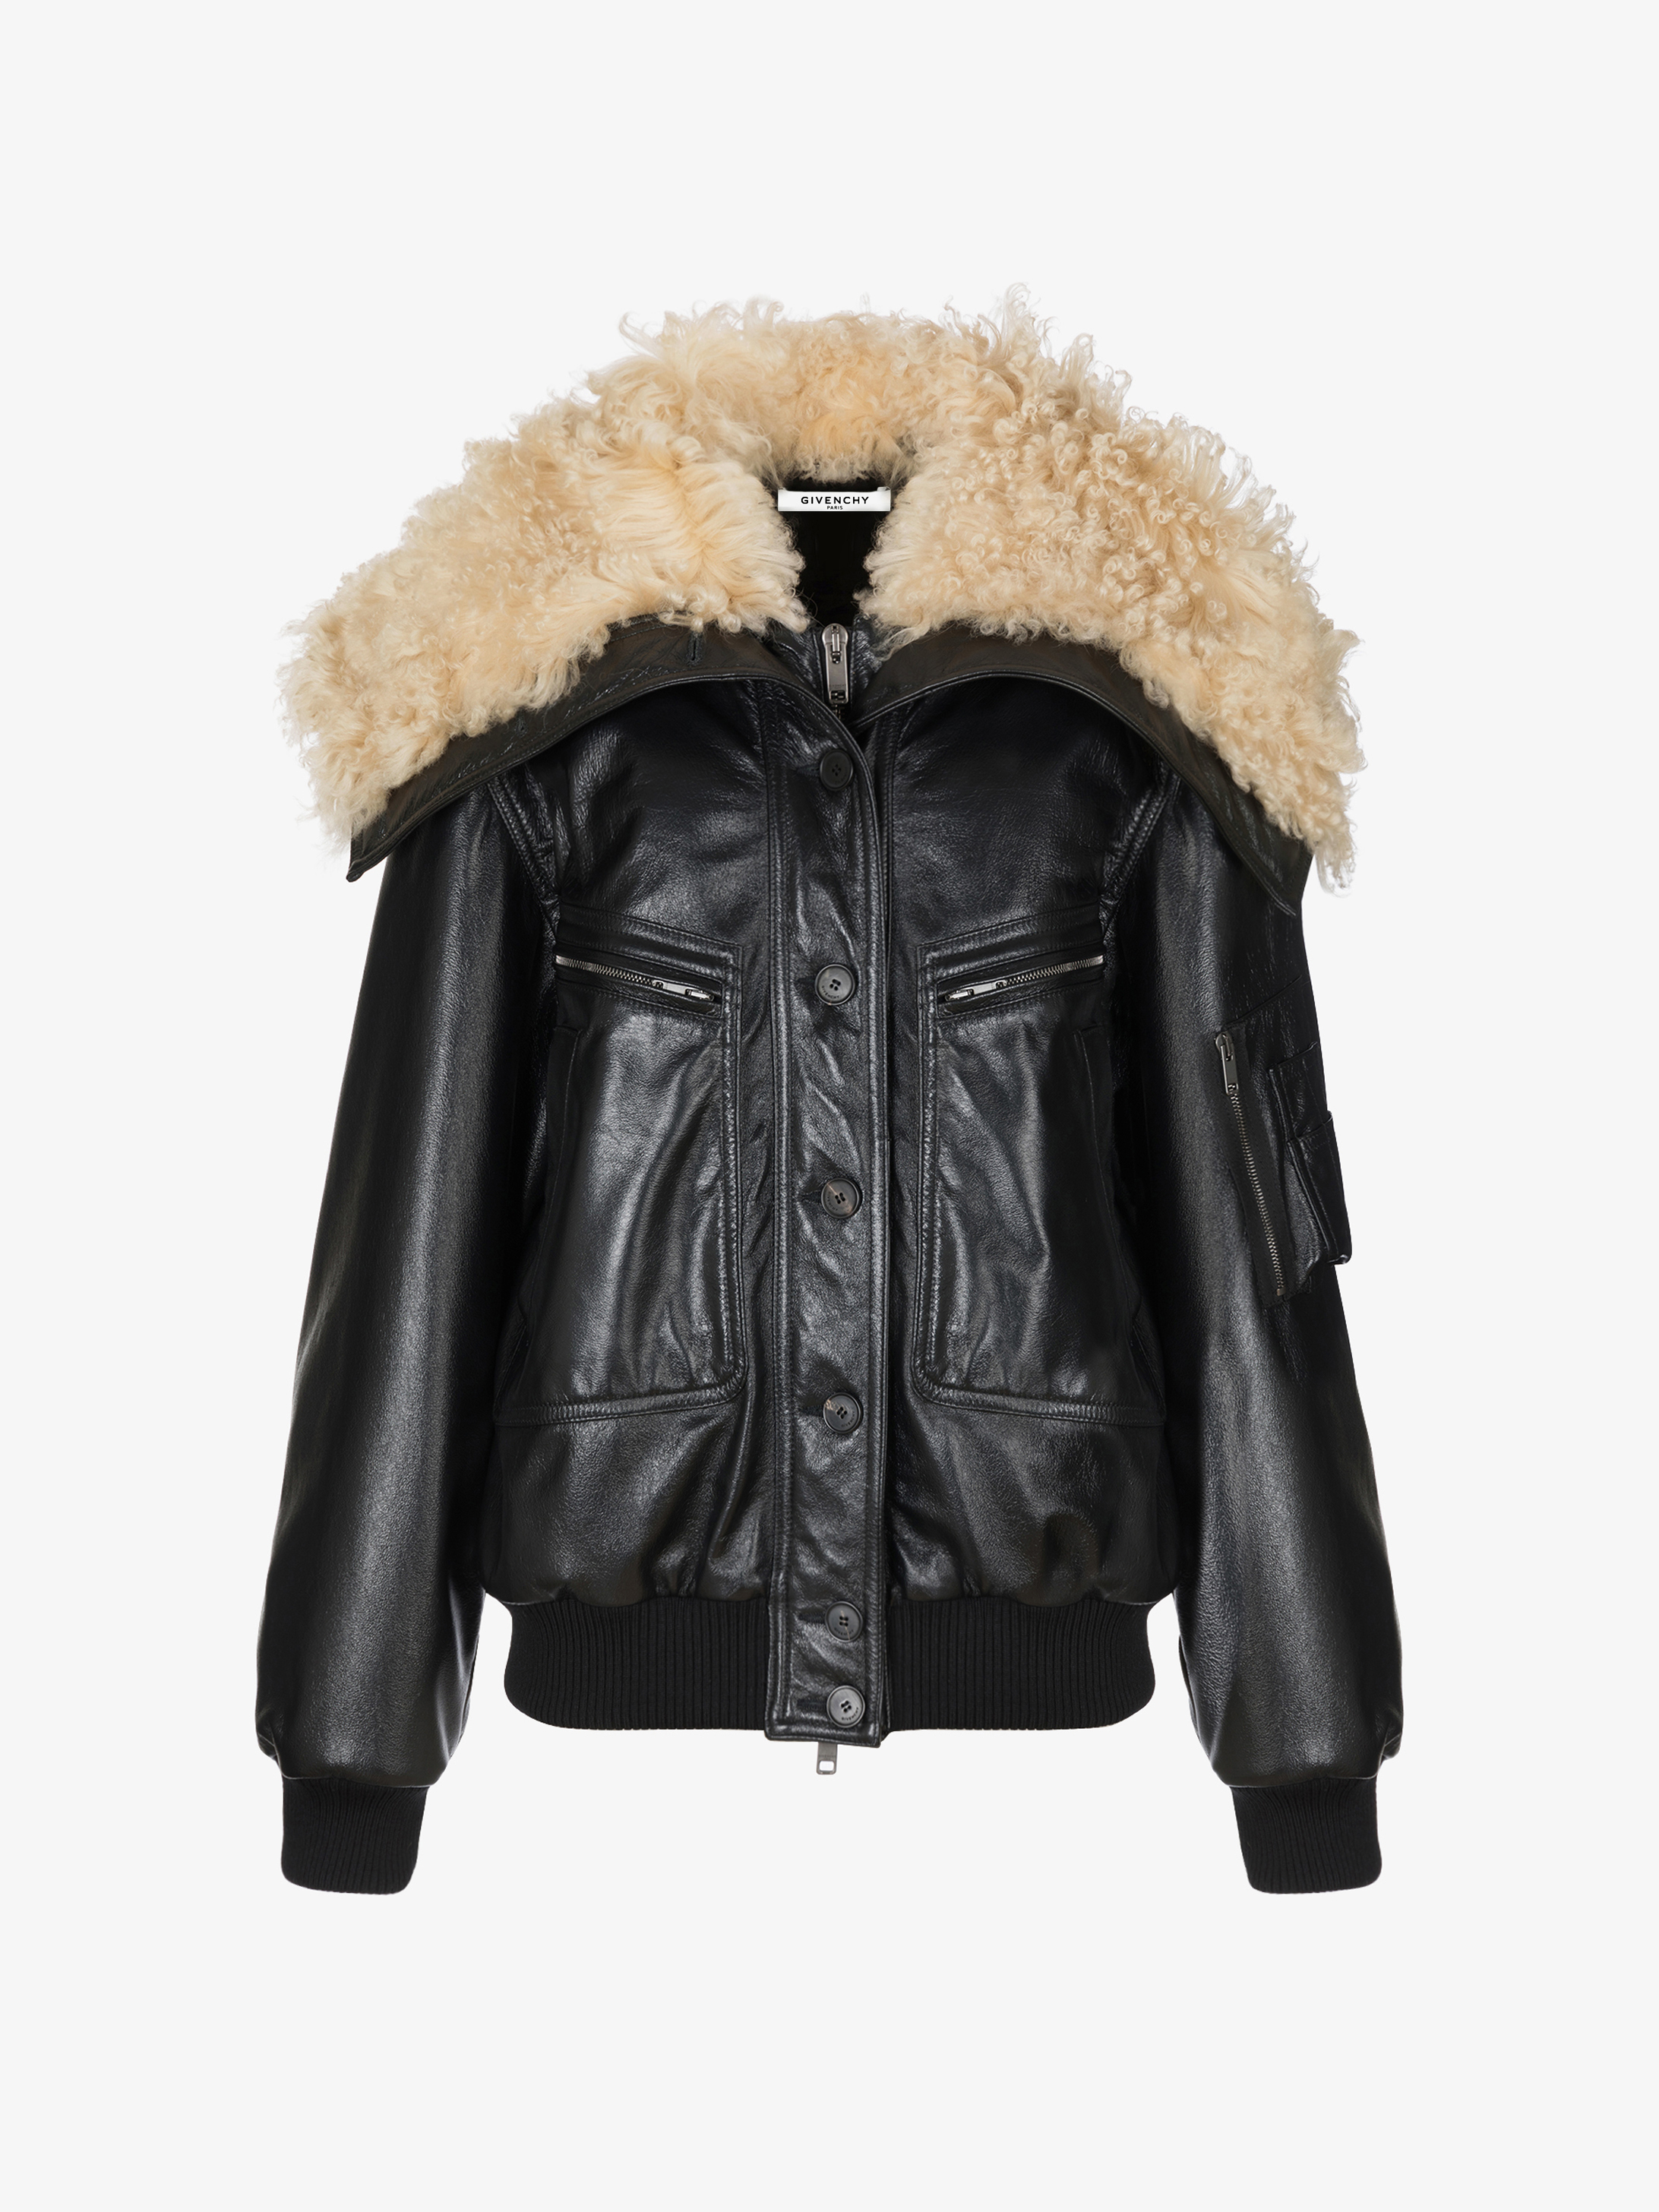 Oversized jacket in leather with shearling collar